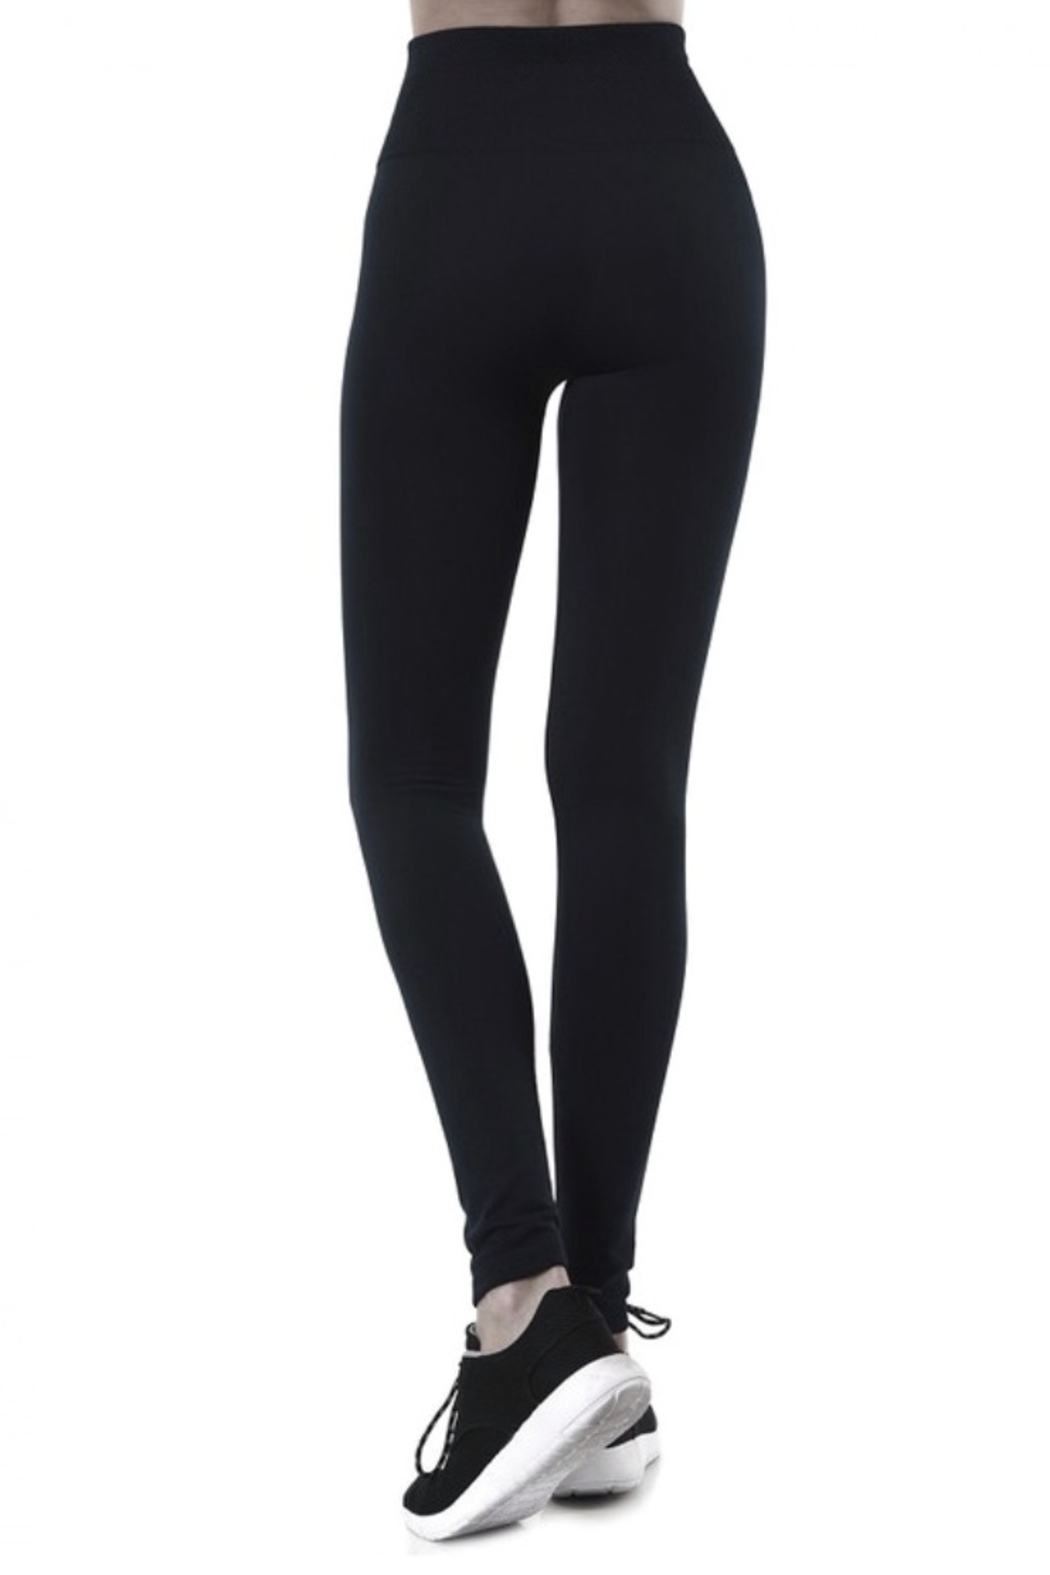 cjrose faux fur lined leggings - Front Full Image